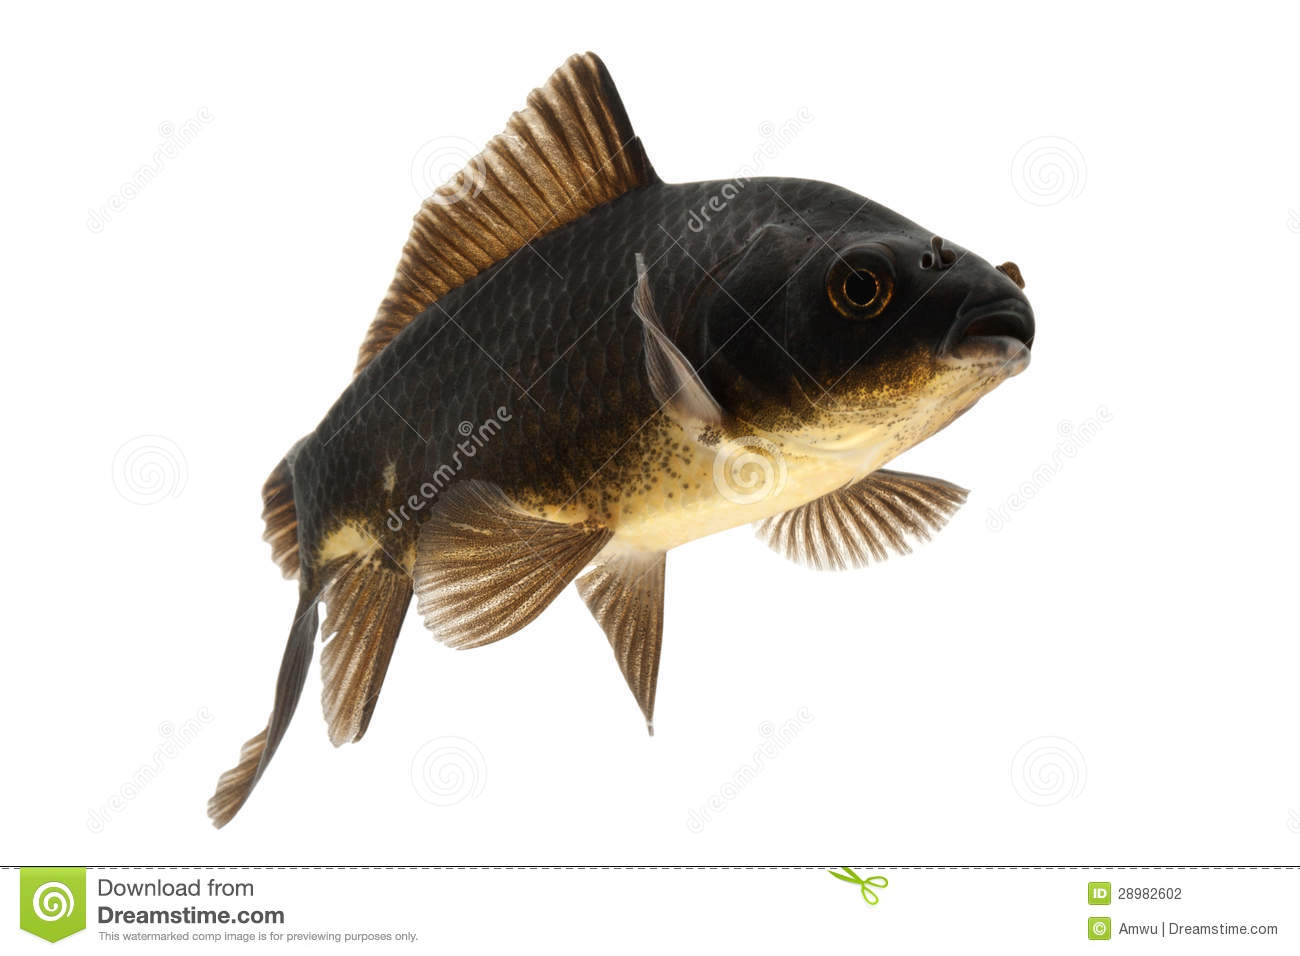 Black koi fish stock photography image 28982602 for All black koi fish